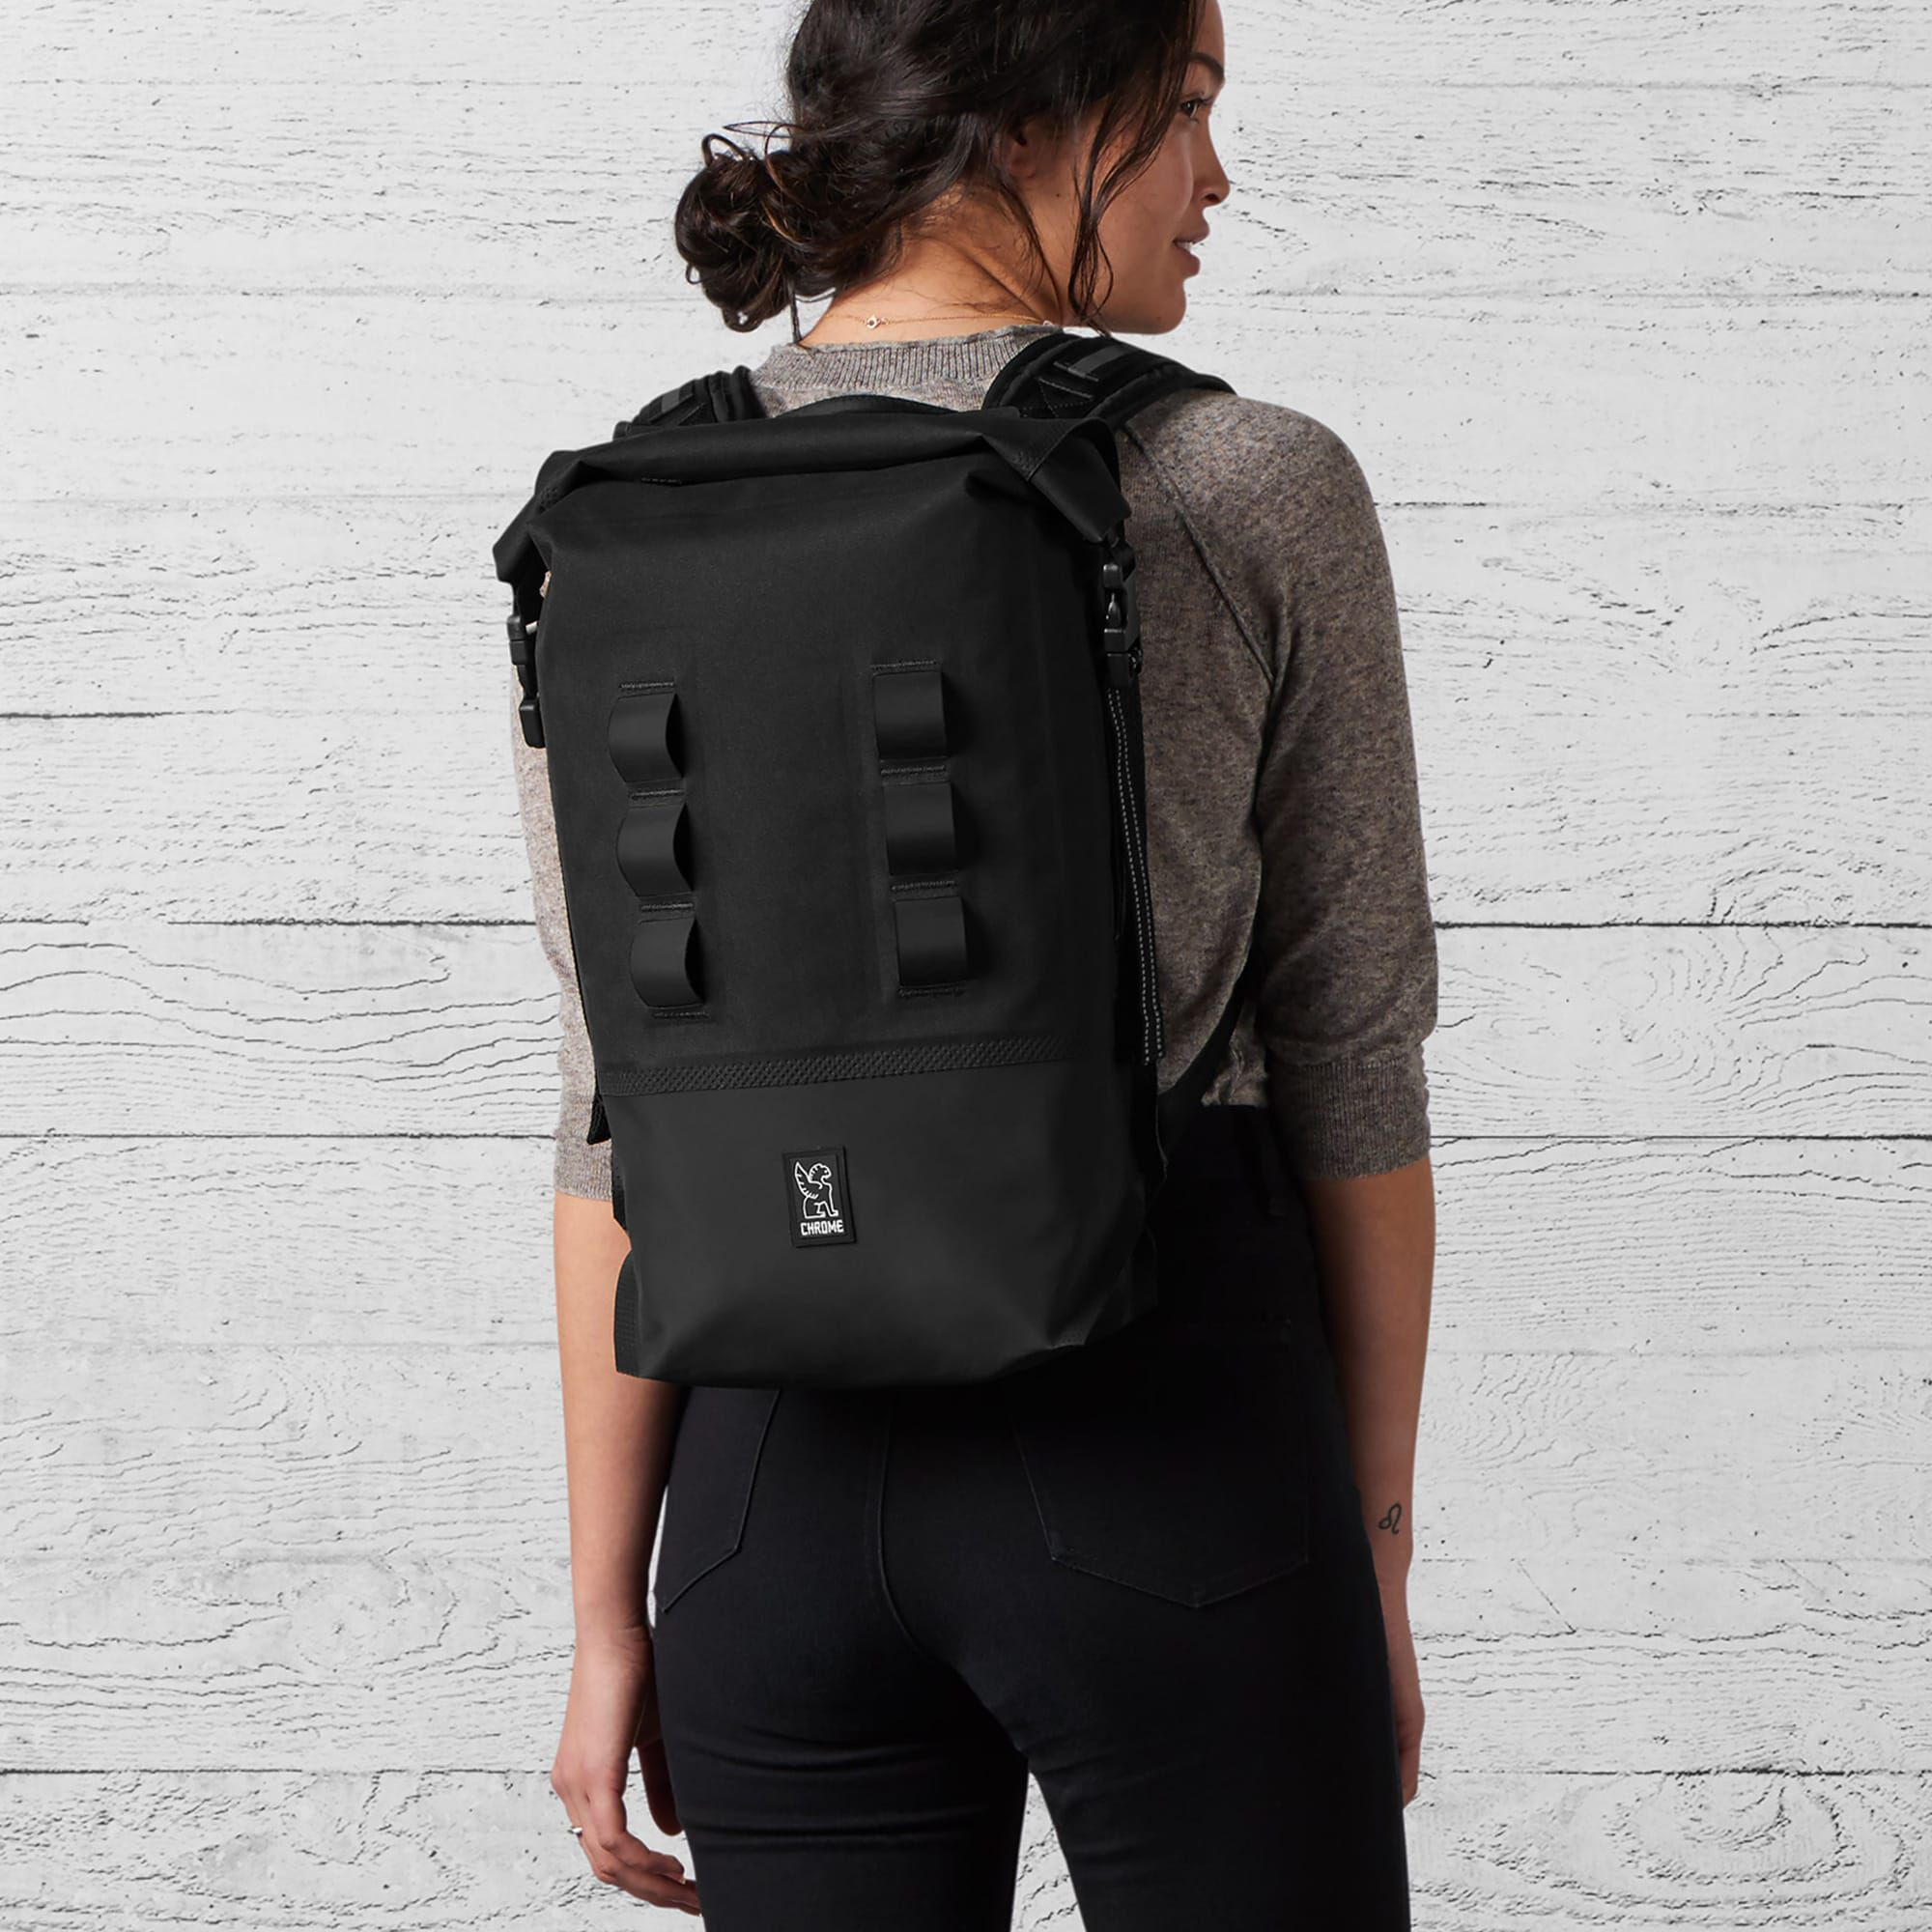 Urban Ex Rolltop 18l Backpack In Black Small View